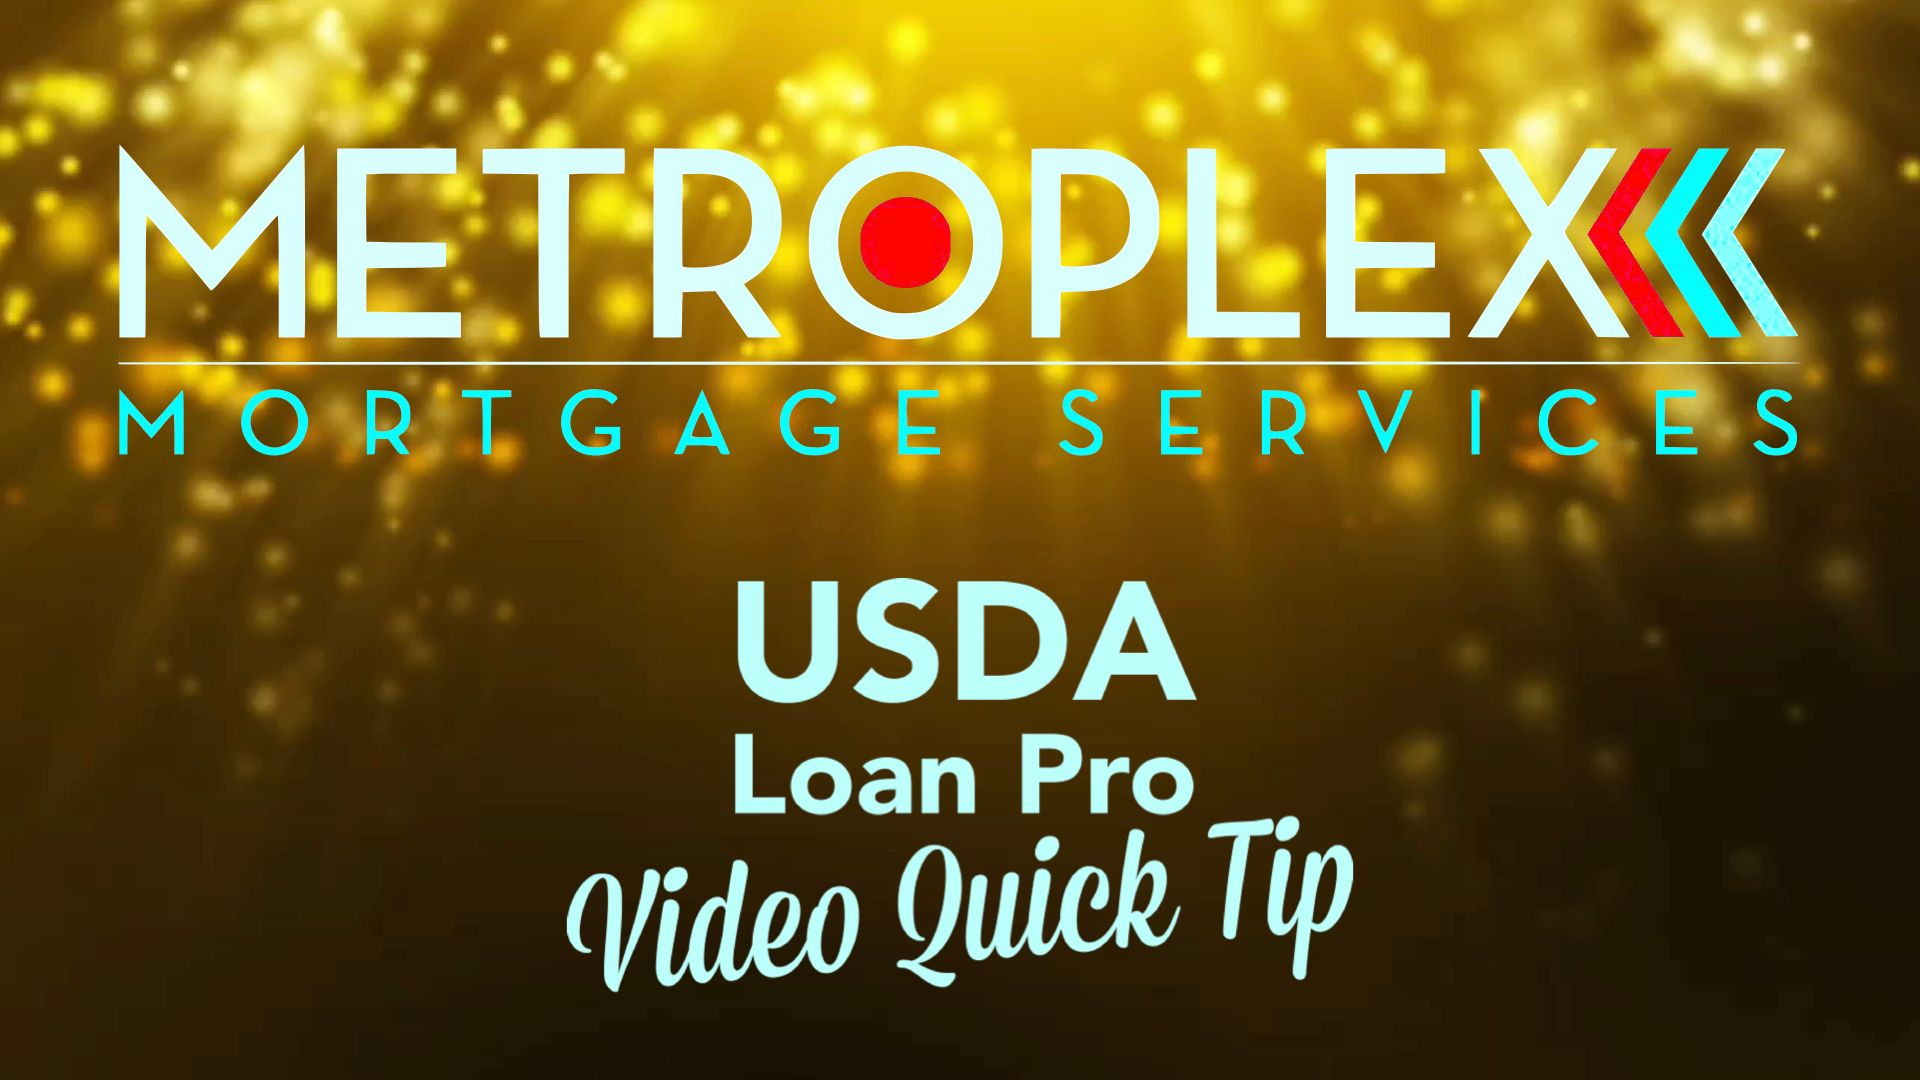 How can alimony or child support affect your USDA mortgage loan approval